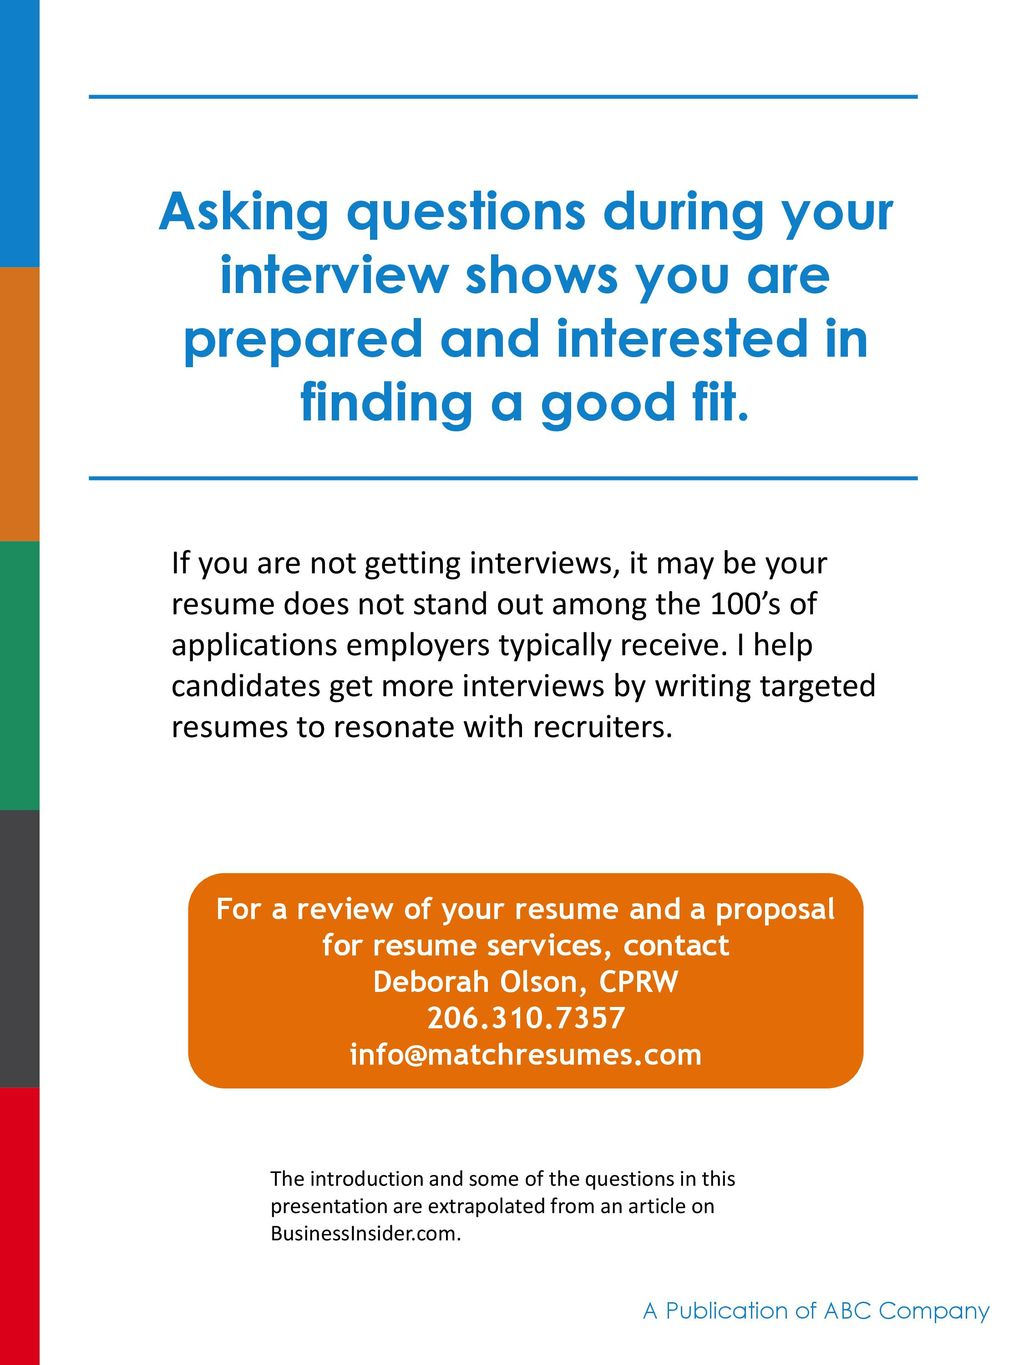 Asking Questions During Your Interview Shows You Are Prepared And  Interested In Finding A Good Fit